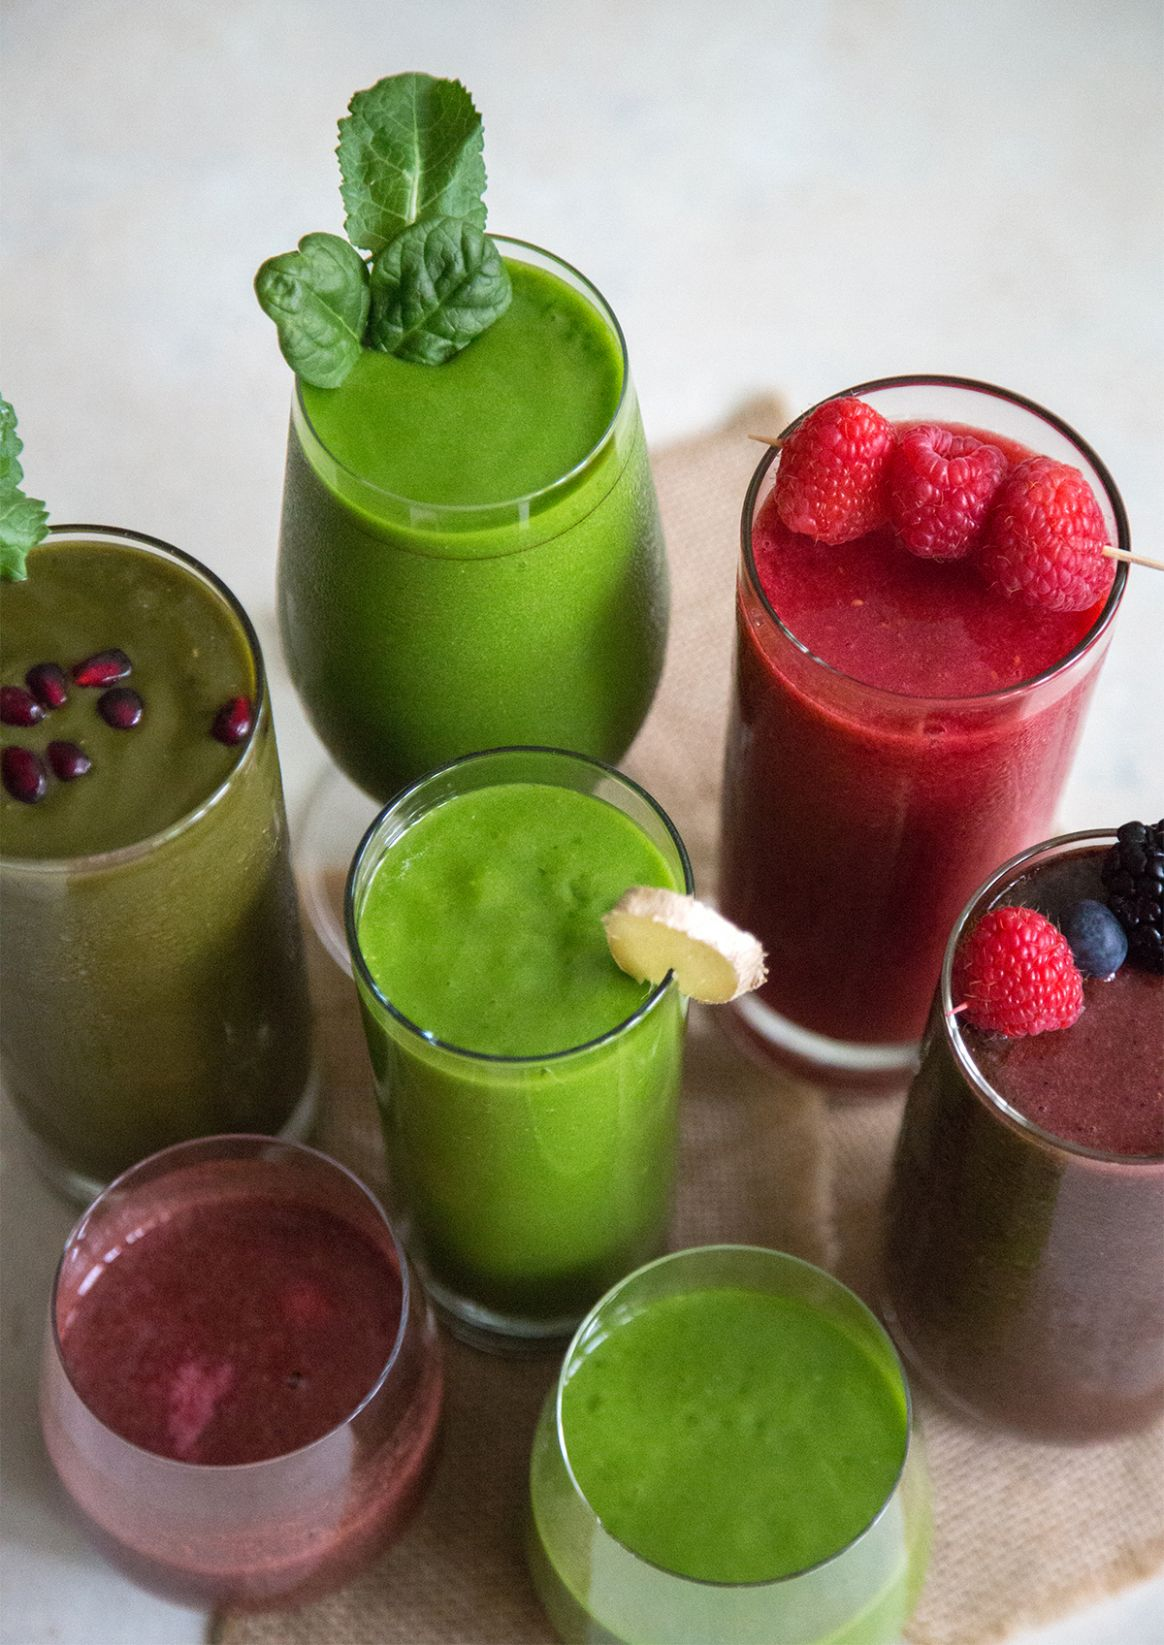 11 Fruit and Veggie Smoothies (A Week of Smoothies) - Blending Recipes Vegetable And Fruits